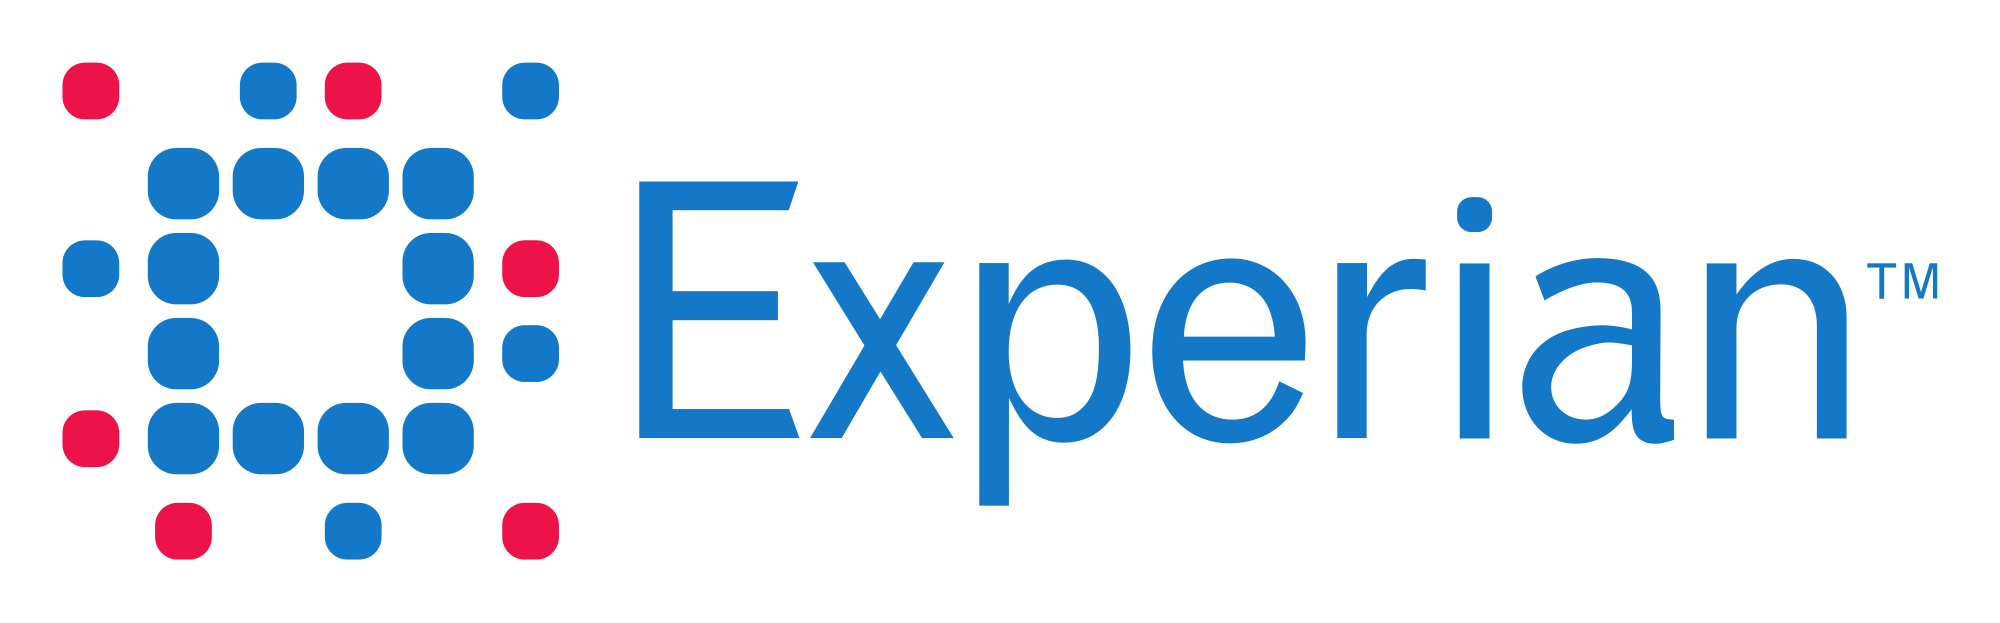 Experian says it lost the personal data of 15 million T.